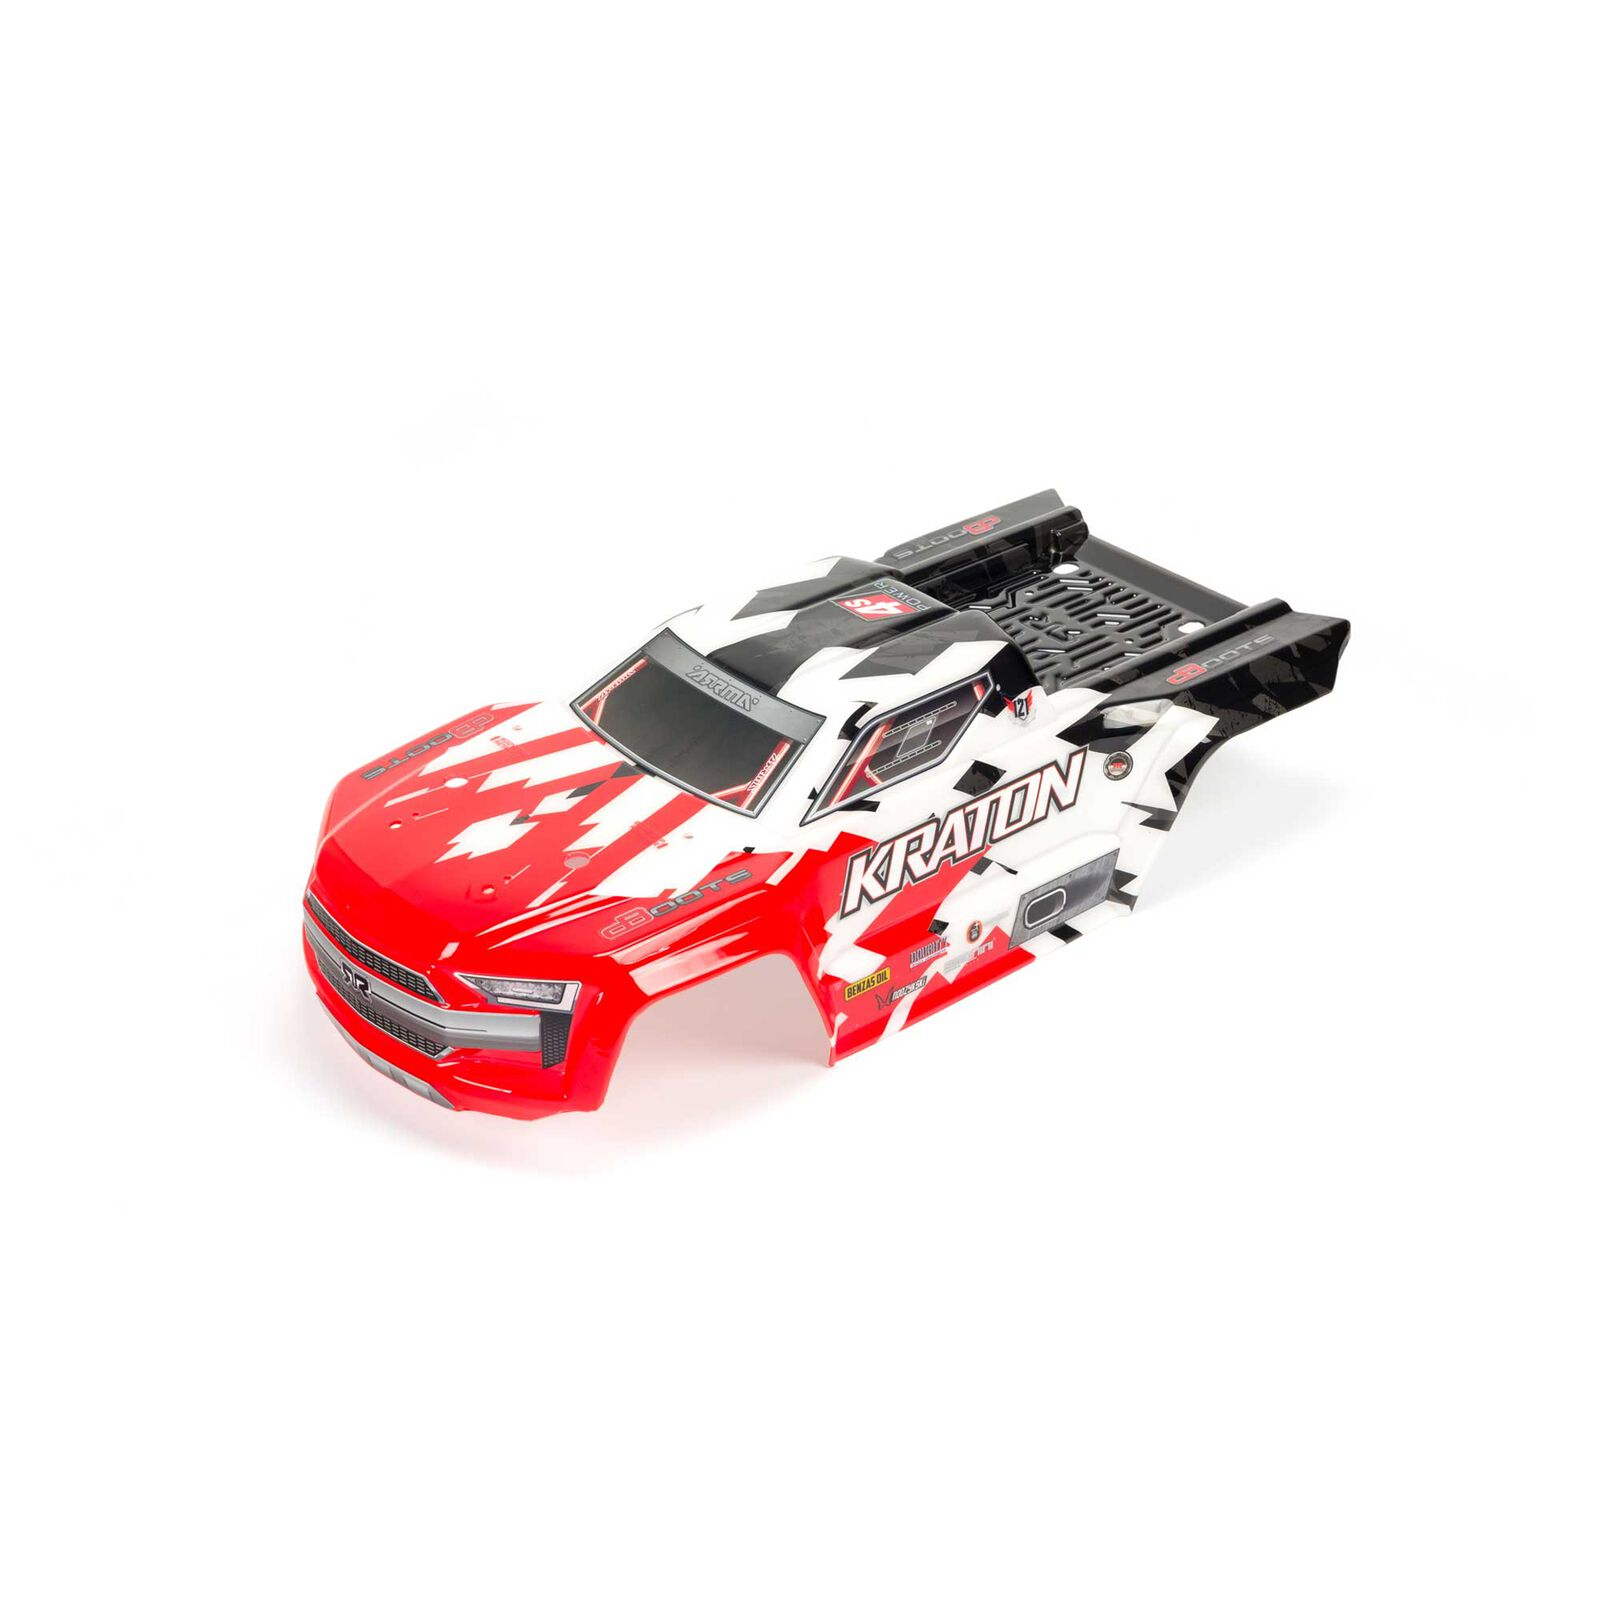 1/10 Painted Trimmed Body with Decals, Red: KRATON 4X4 BLX